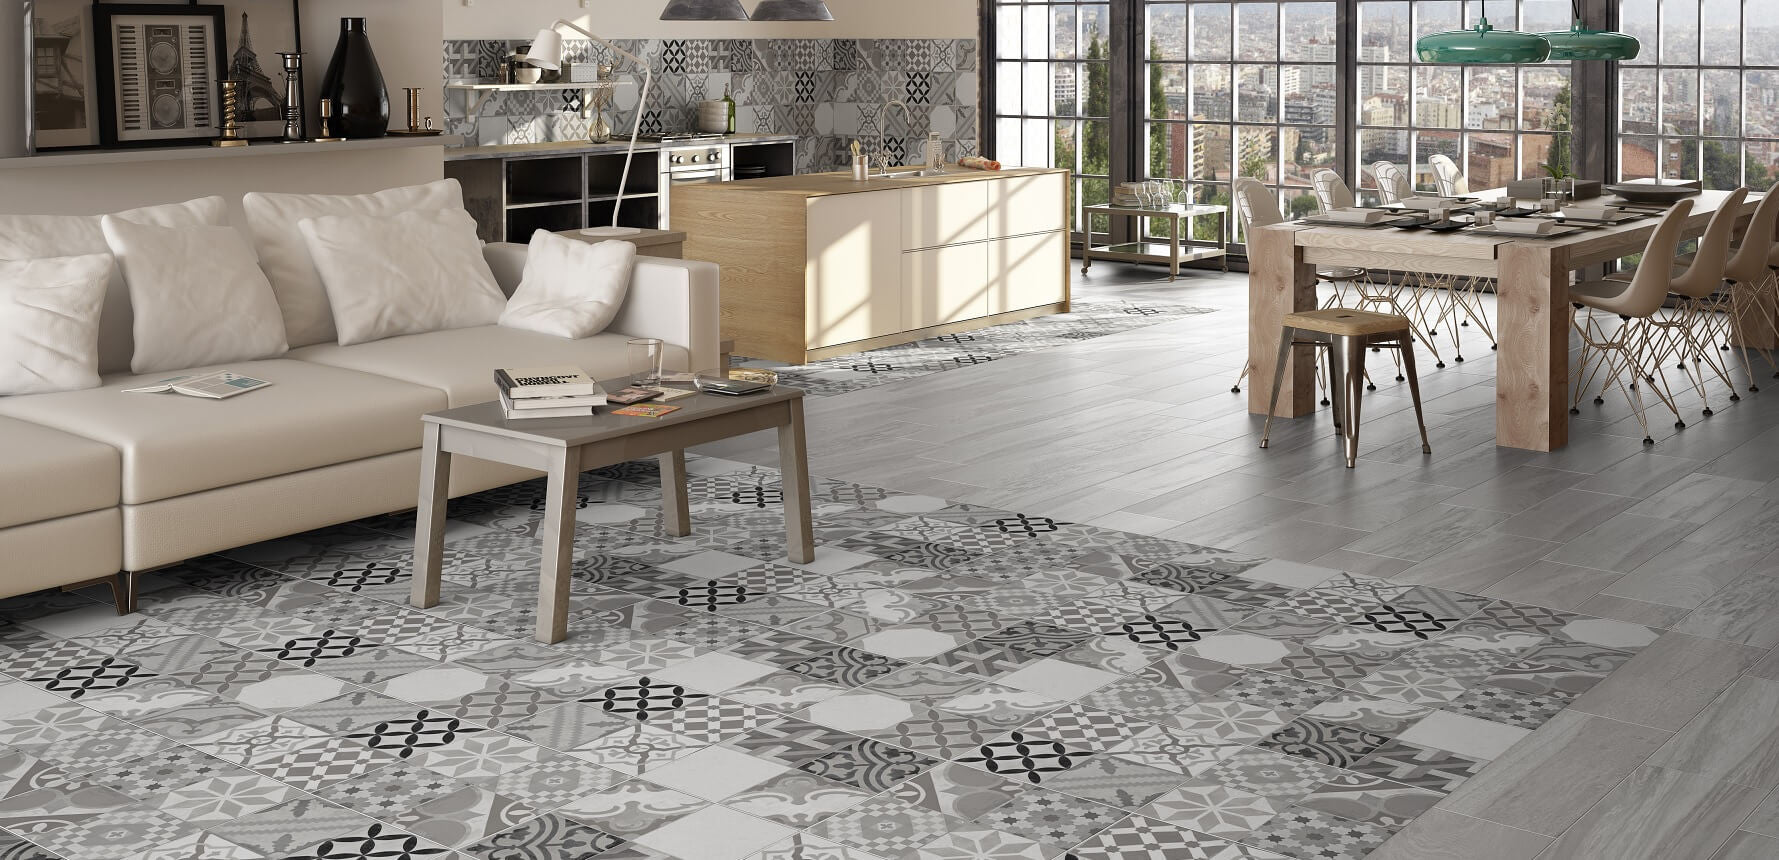 Moments Grey Floor Tiles In Stunning Loft Apartment With View Of City